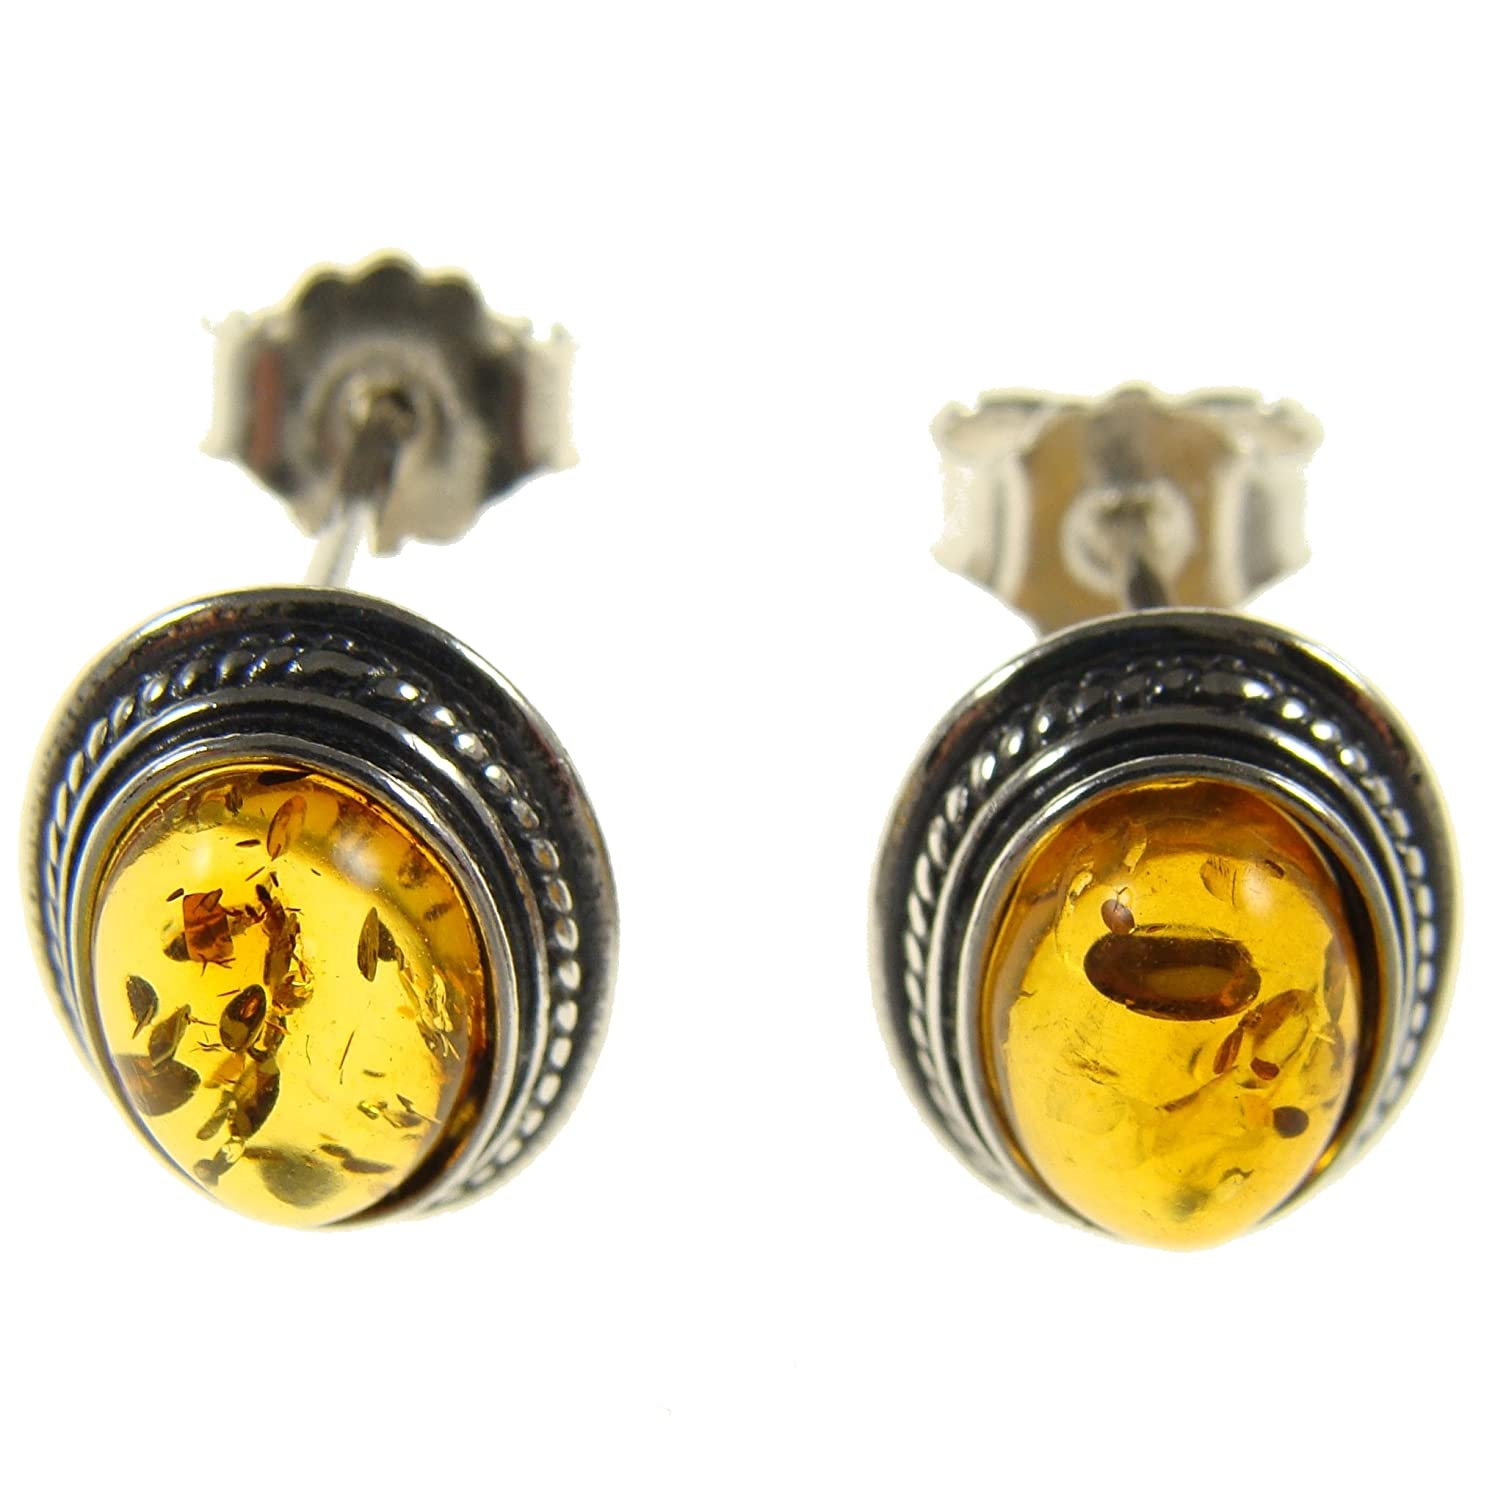 BALTIC AMBER AND STERLING SILVER 925 DESIGNER COGNAC STUD EARRINGS JEWELLERY JEWELRY